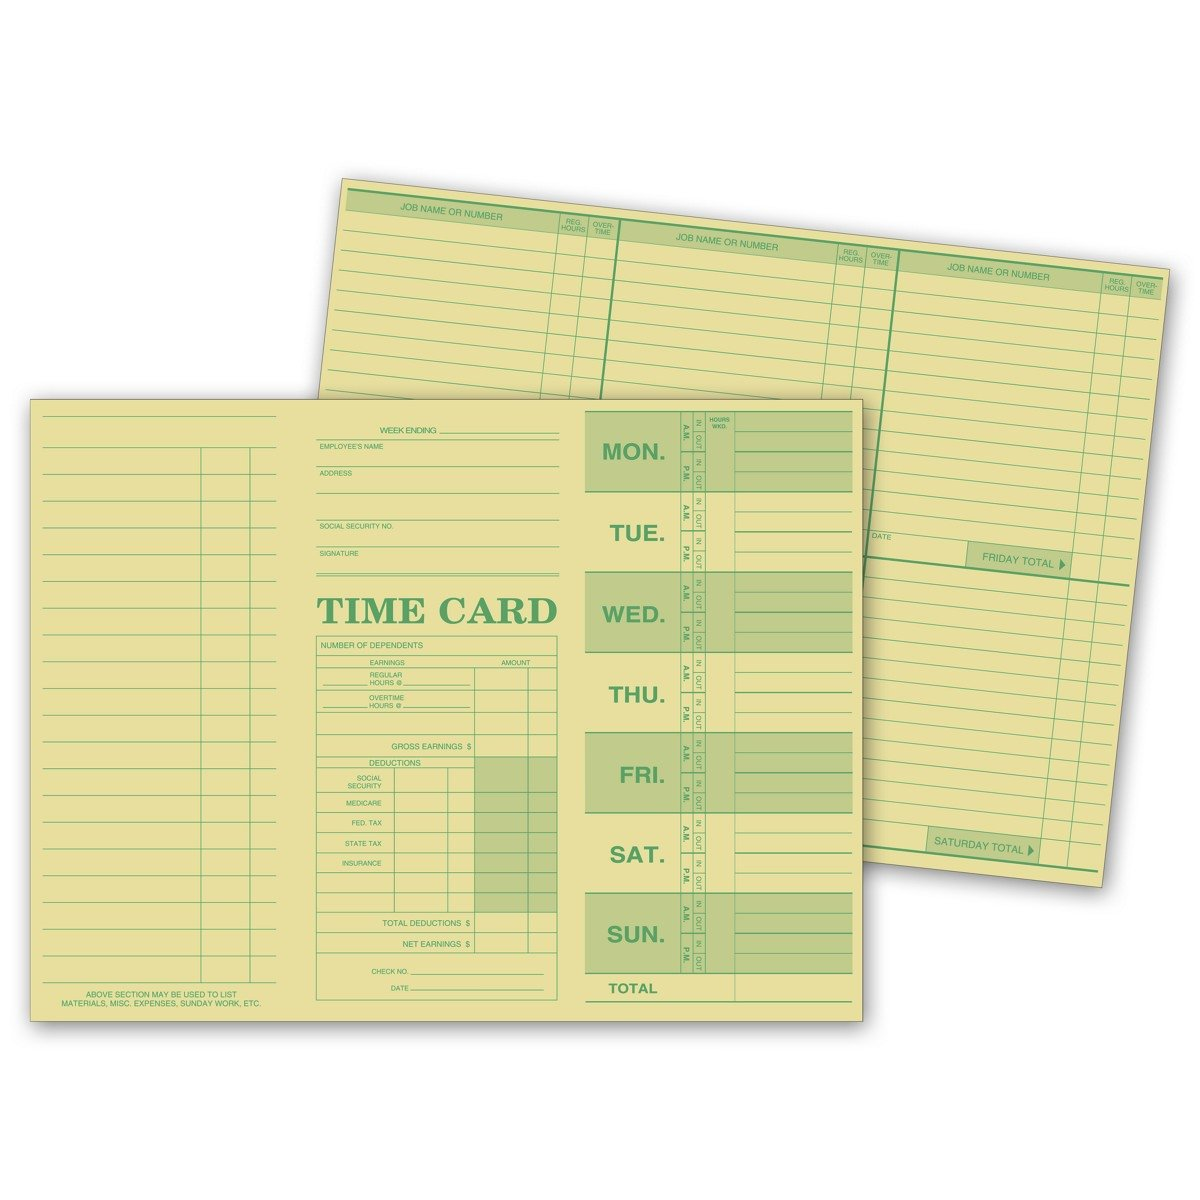 CheckSimple Weekly Time Card, Tag Stock - Pre-Printed for Jobs, Hours, Overtime, Earnings, Deductions - Manual or Time Clock Use (250 Qty) by CheckSimple